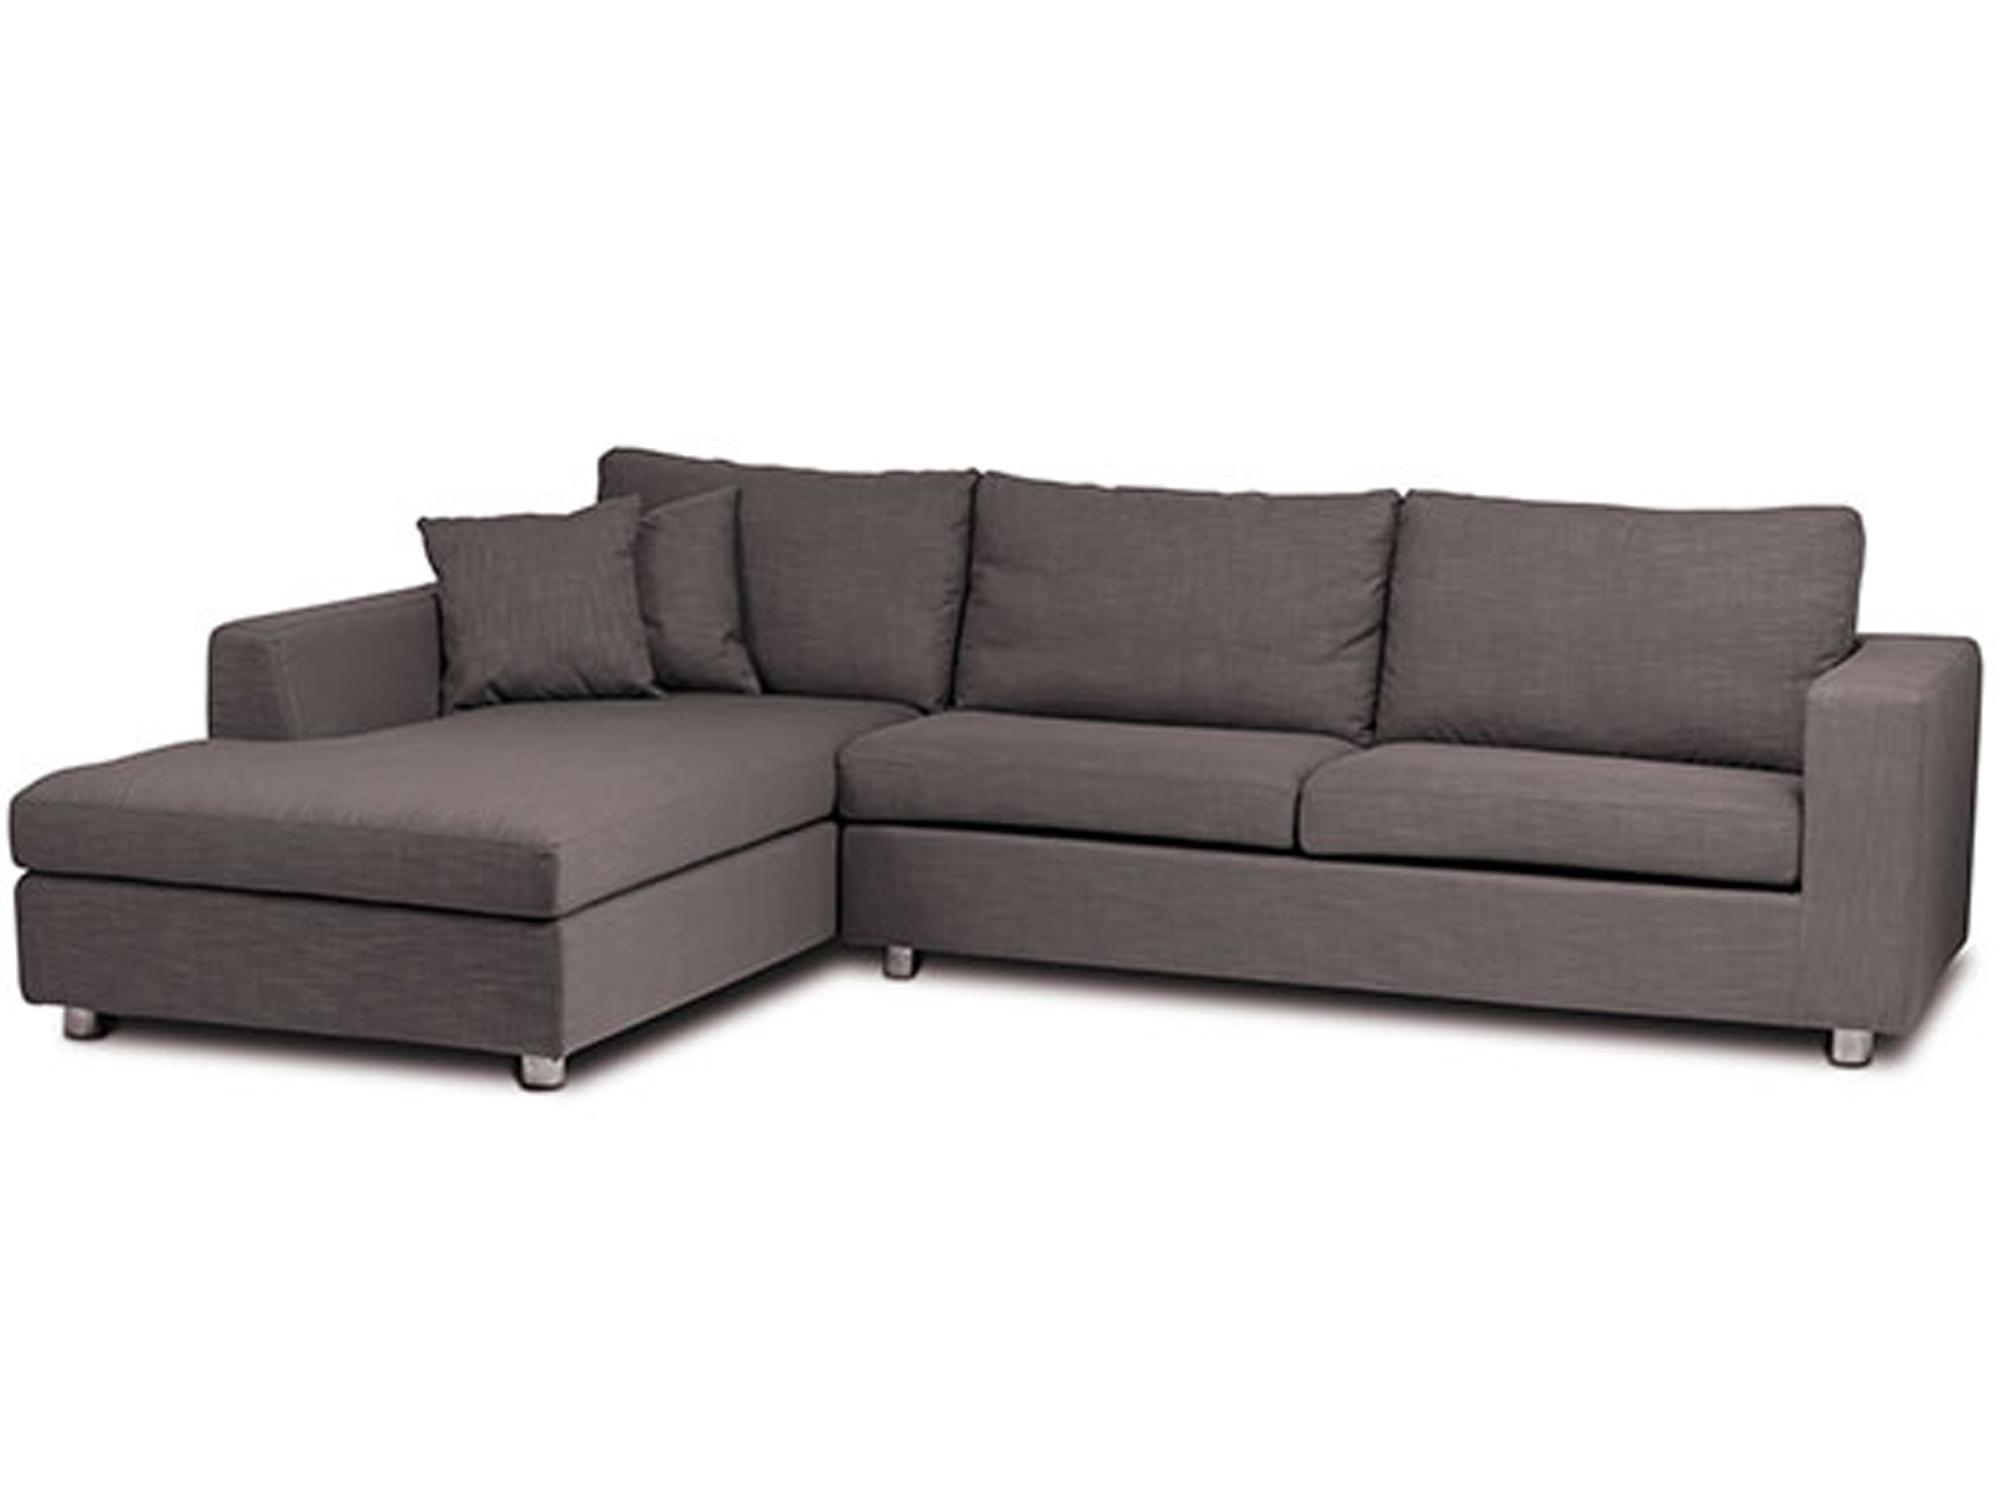 Sofas Center : Formidable Corner Sofa Picture Ideas Beds Uk Cheap With Cheap Corner Sofas (Image 18 of 20)